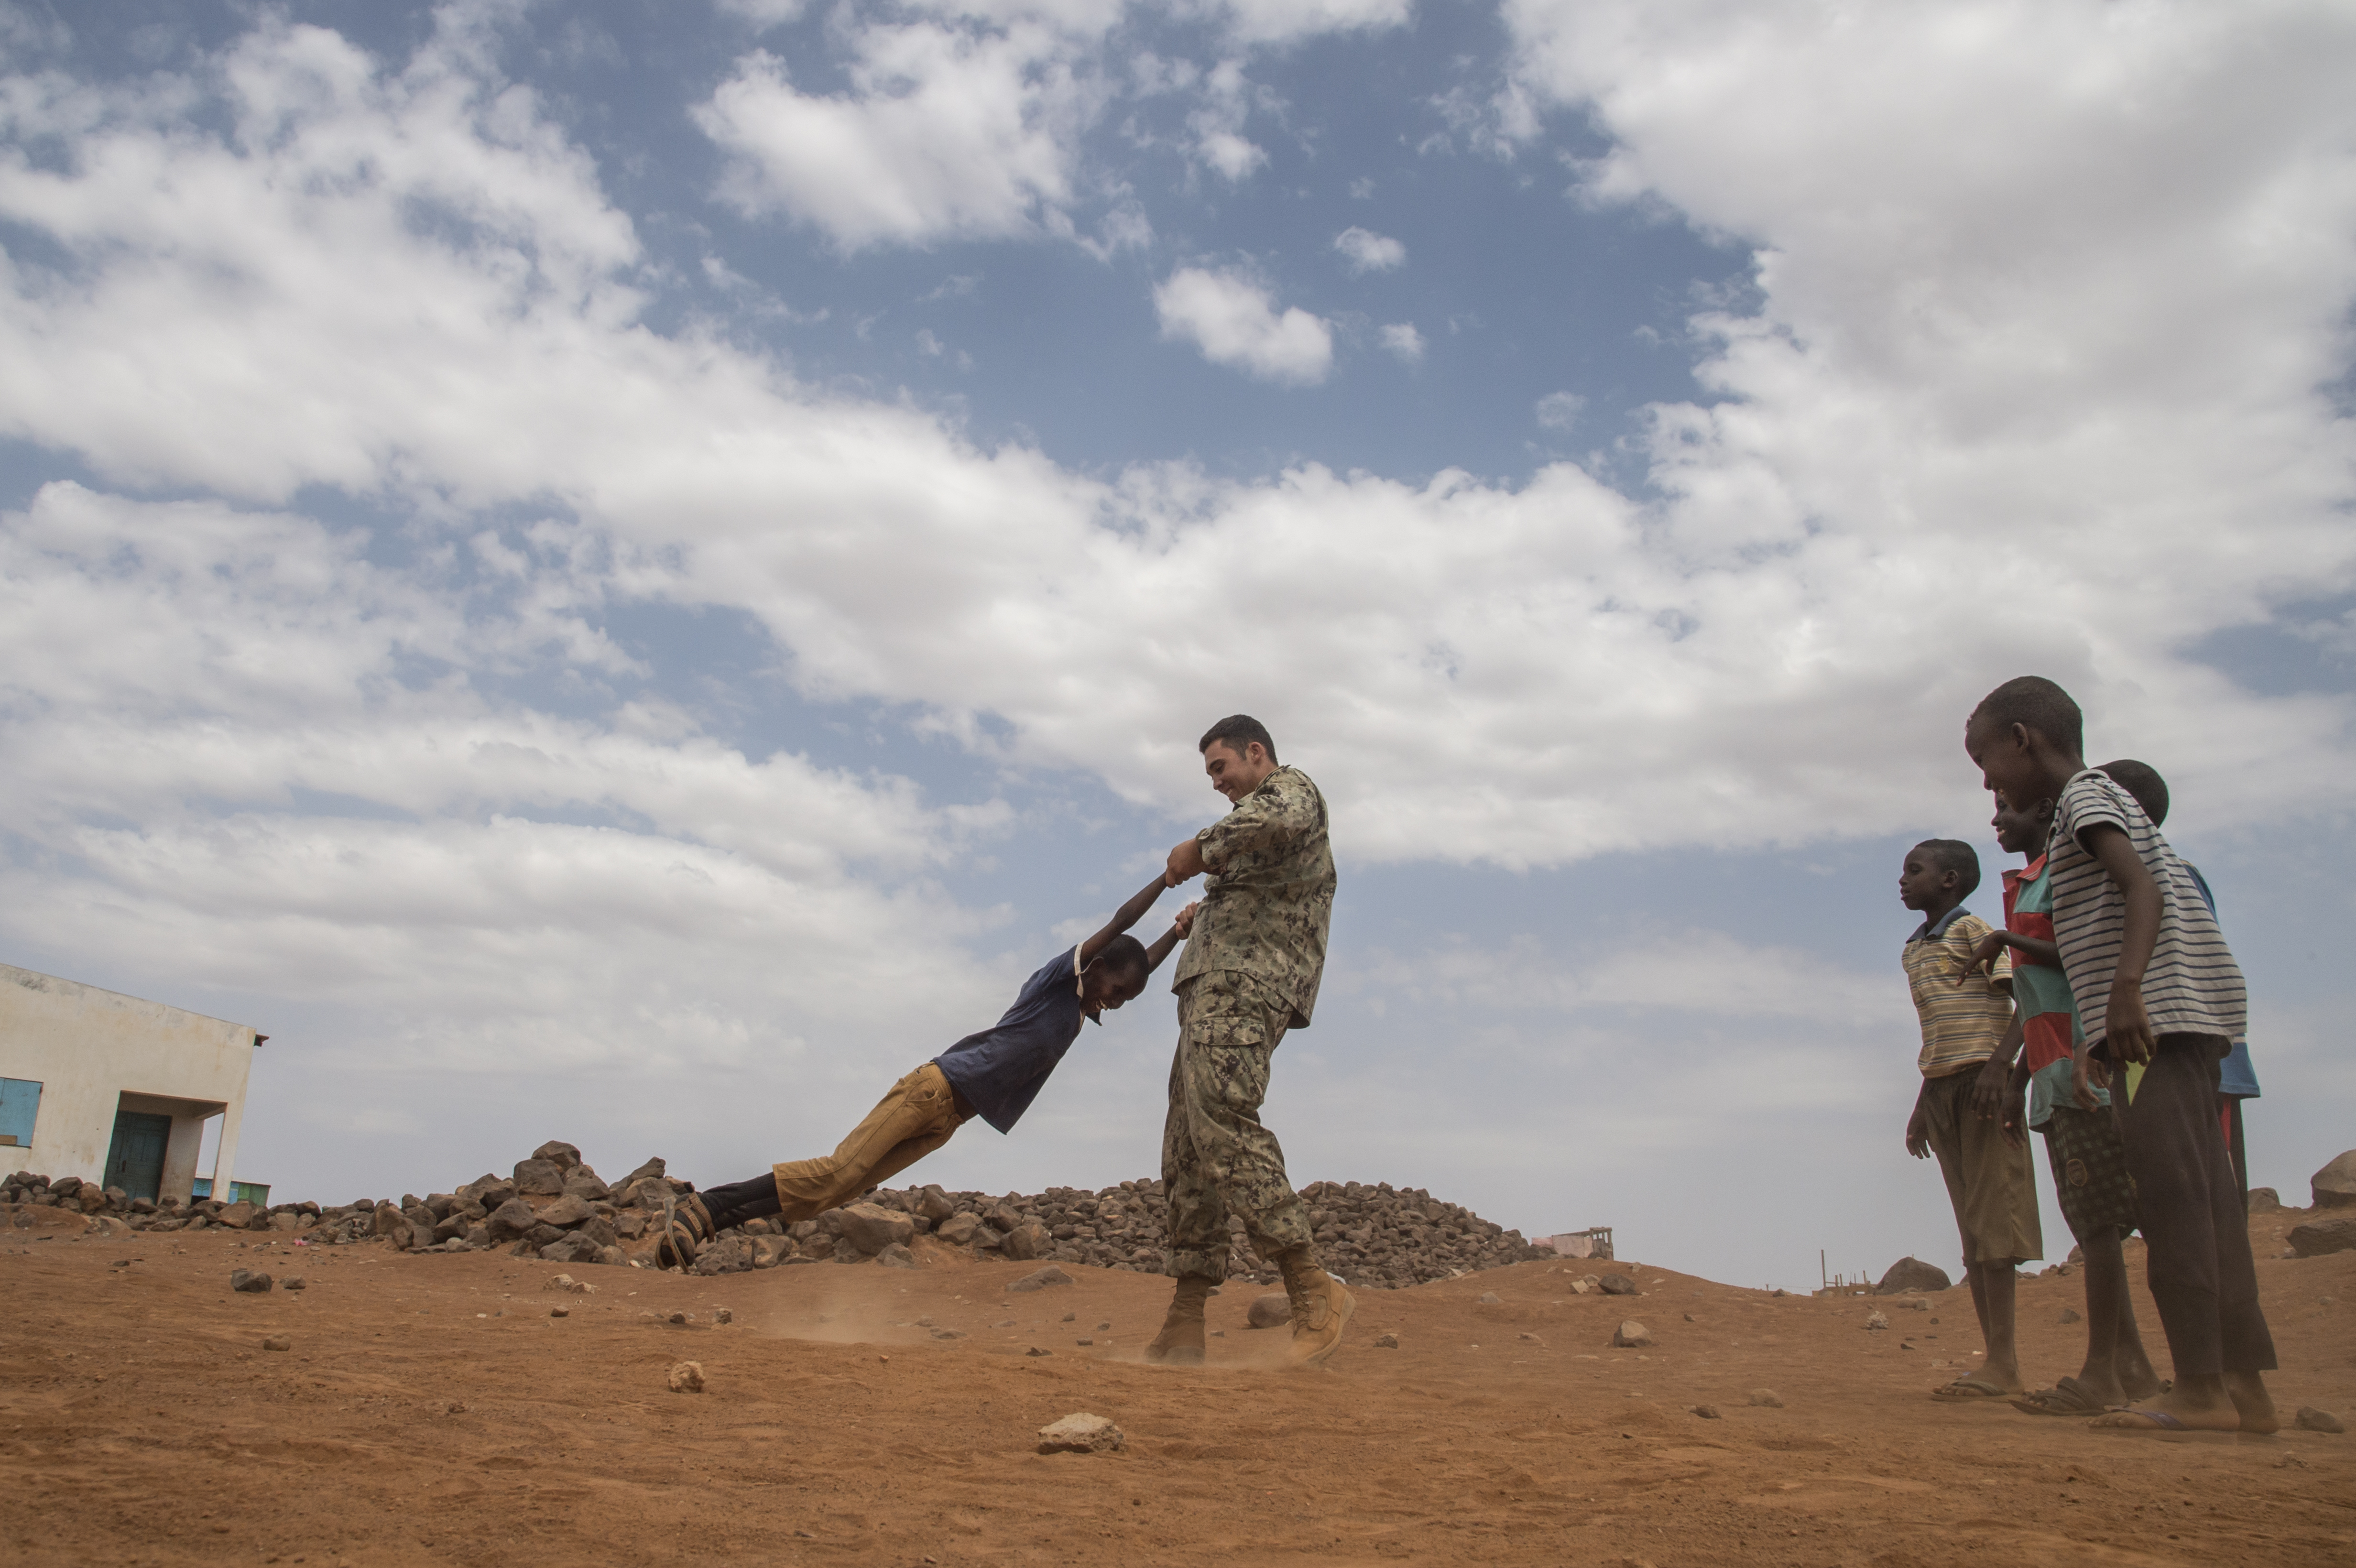 U.S. Navy Seabee Seaman Jesse Martinez, assigned to Combined Joint Task Force-Horn of Africa, plays with local children on a construction site at a remote village in the Arta region of Djibouti, Aug. 17, 2017. The project was started by Naval Mobile Construction Battalion ONE, now replaced by NMCB 133, who will continue working on the project. (U.S. Air National Guard photo by Tech. Sgt. Joseph Harwood)